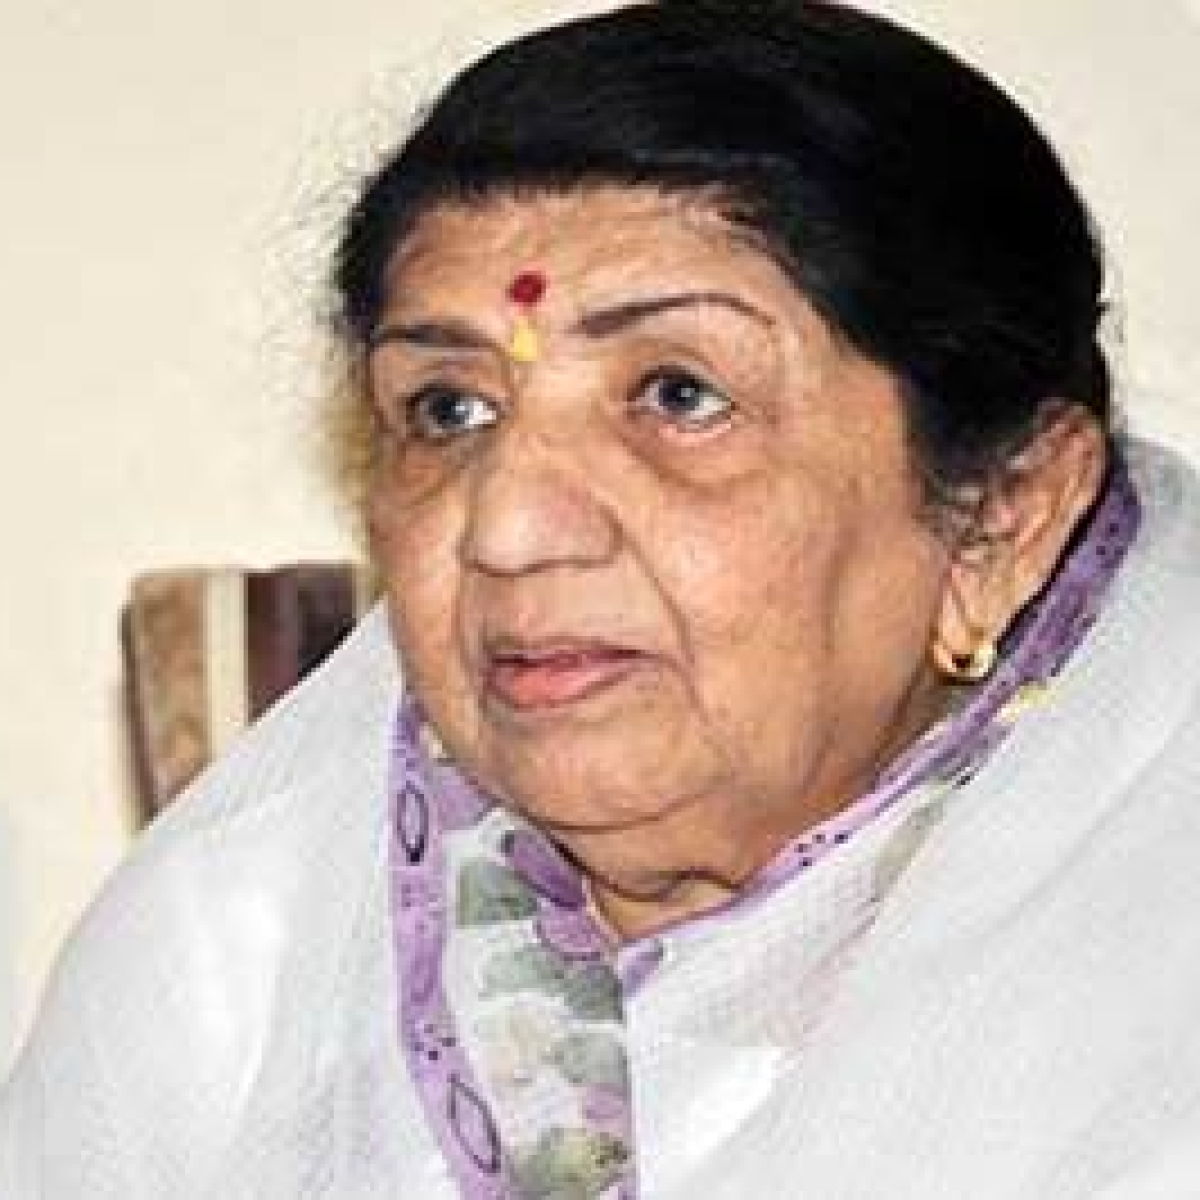 Lata Mangeshkar turns 90 today, and is gearing up for a new song